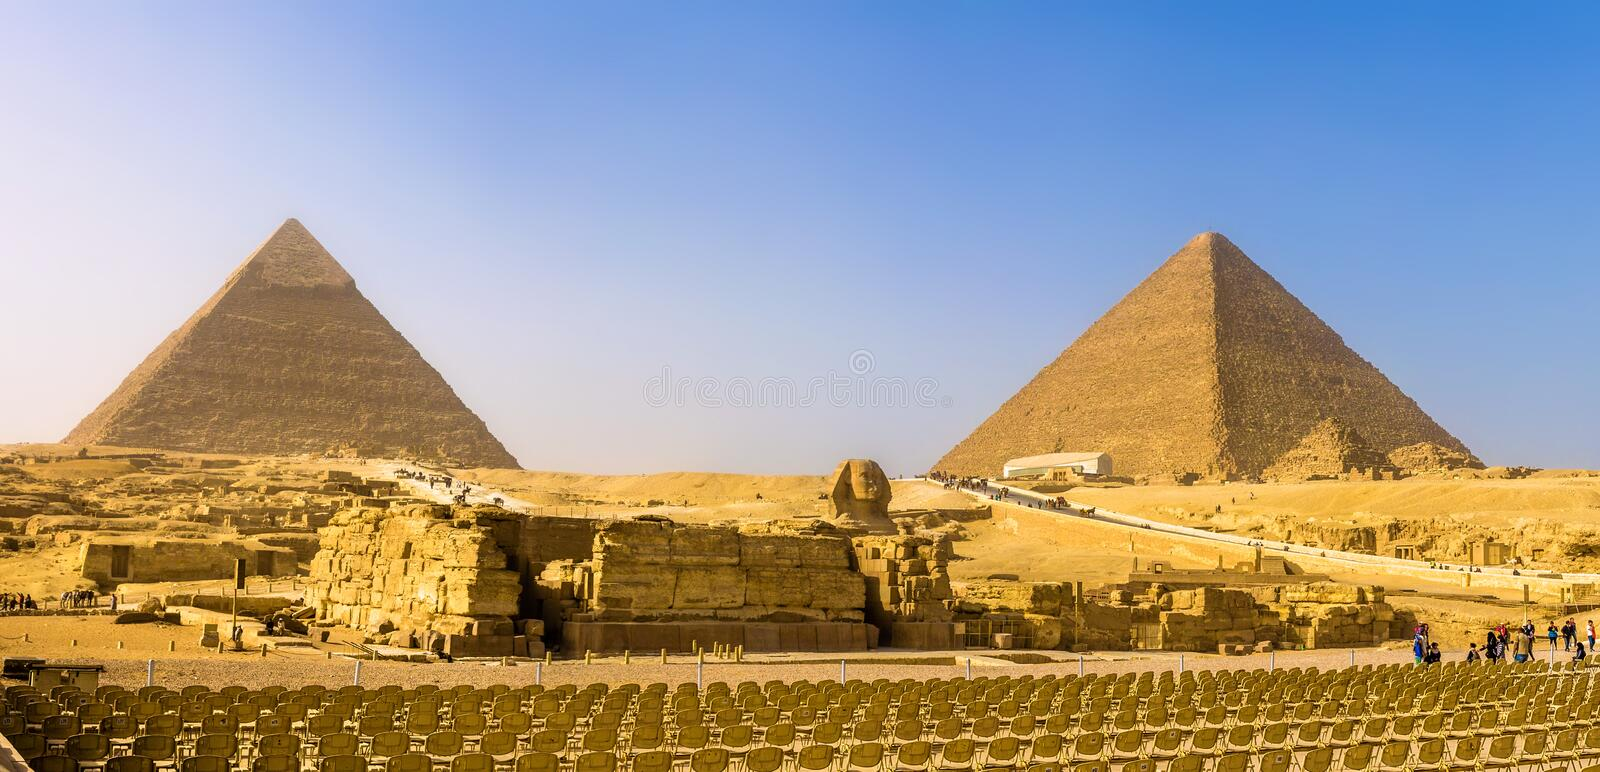 The Great Sphinx and the Pyramids of Giza. Egypt royalty free stock photo